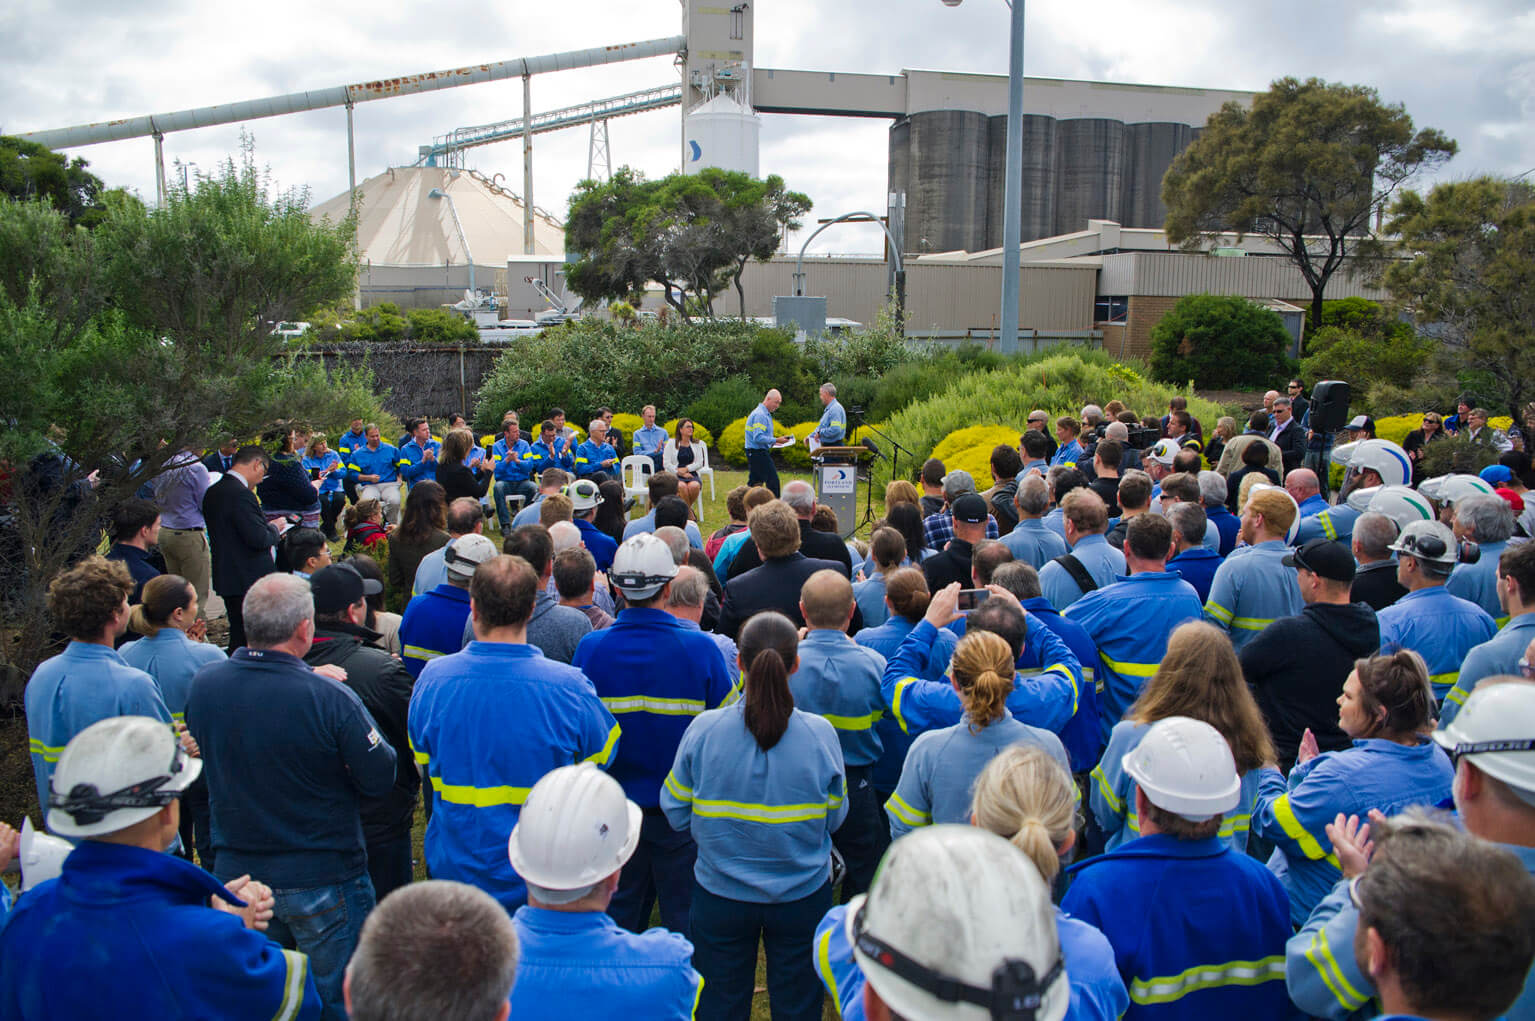 The Victorian and Australian governments and Alcoa have announced the Portland Aluminium smelter will restart capacity that had been lost due to a December power outage.